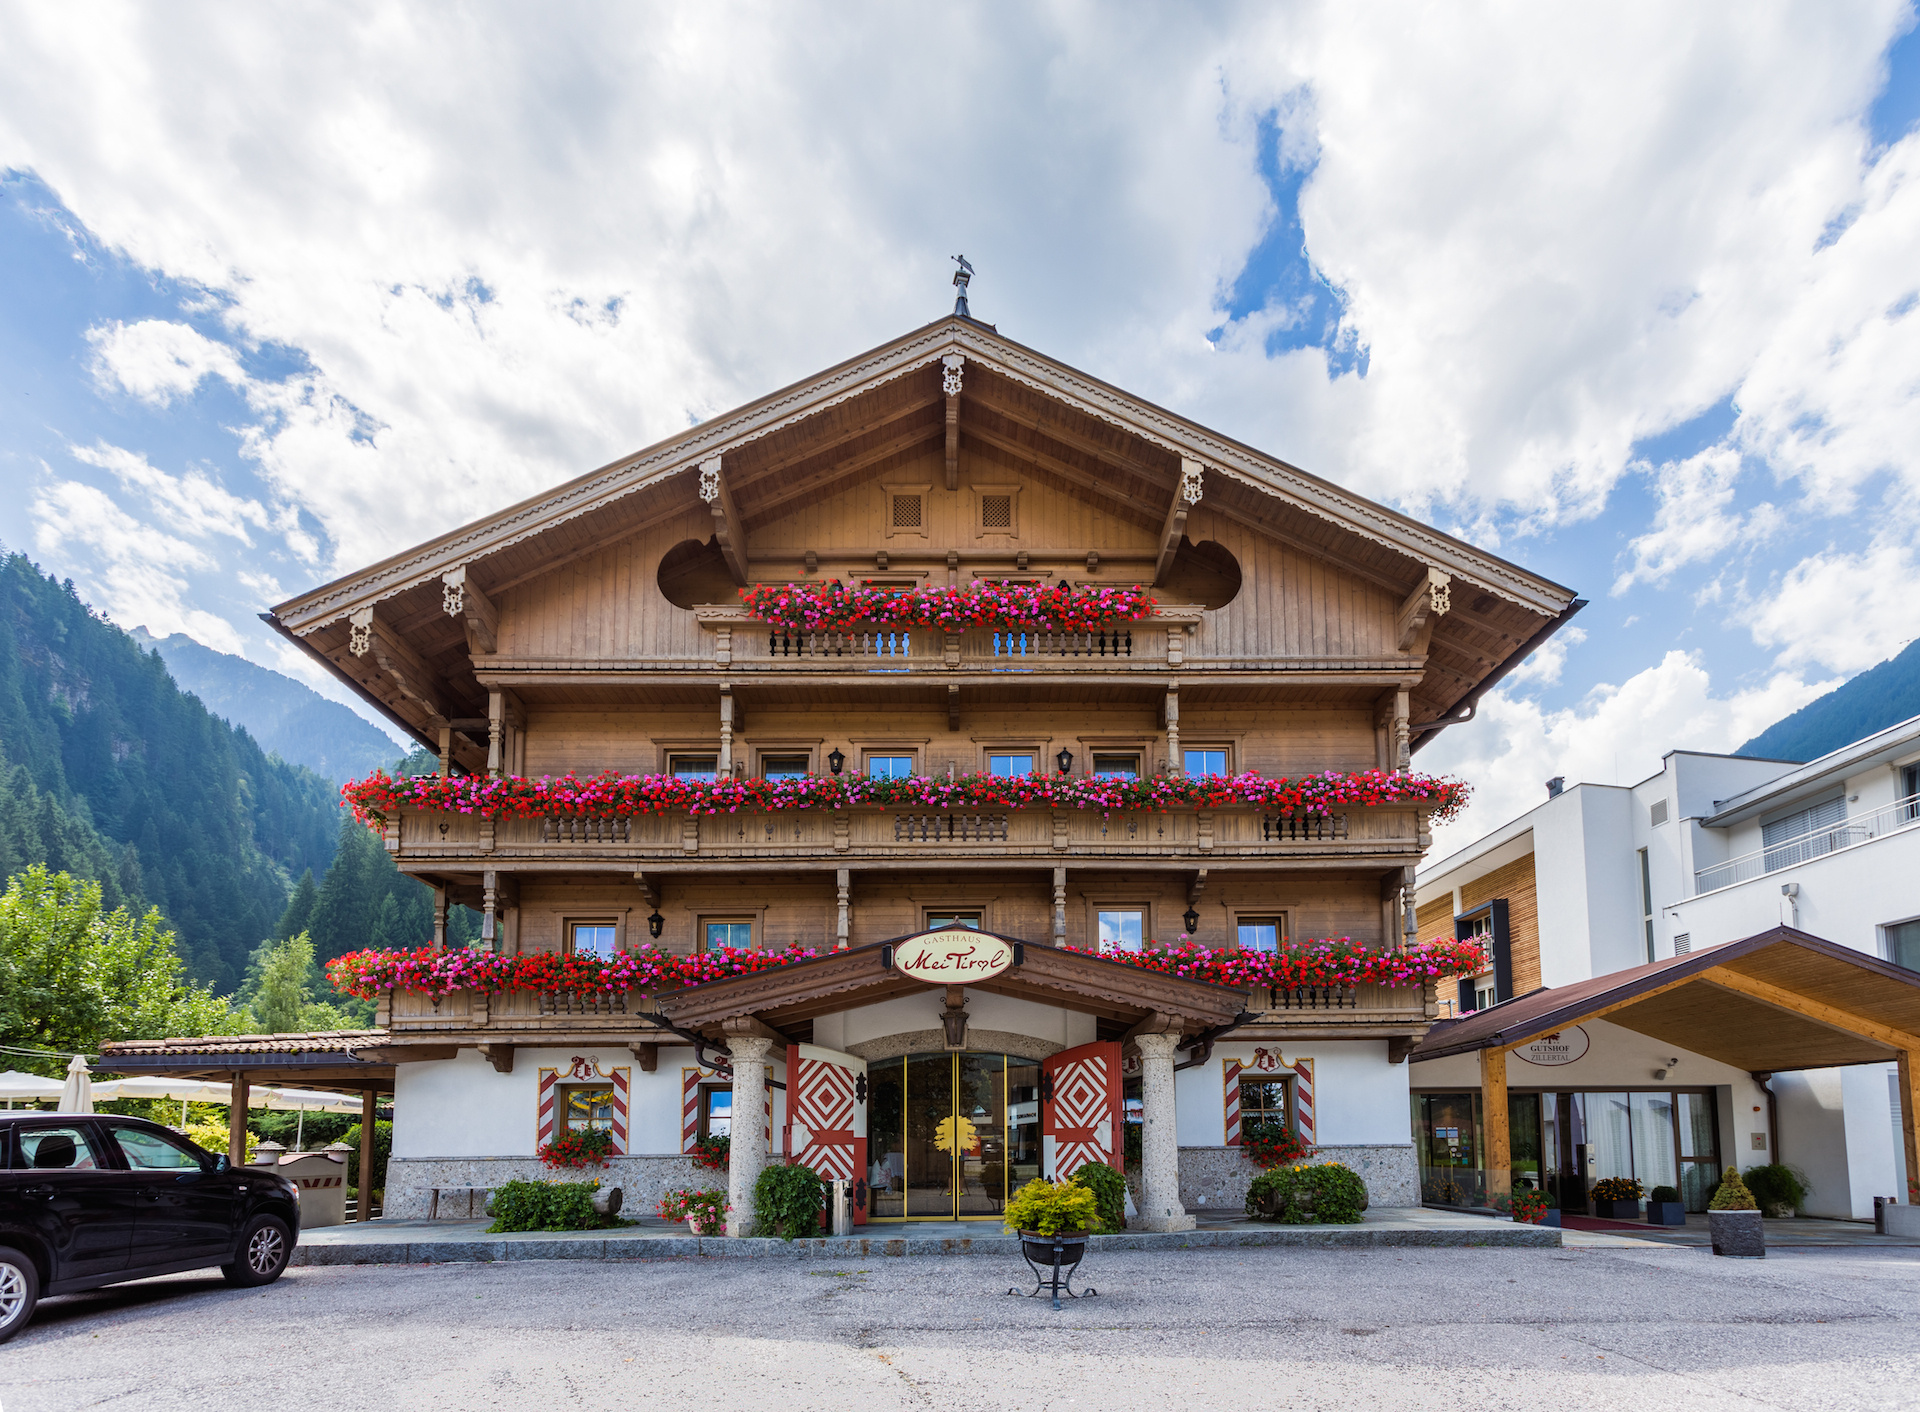 Gutshof Zillertal Hotel – daily photo